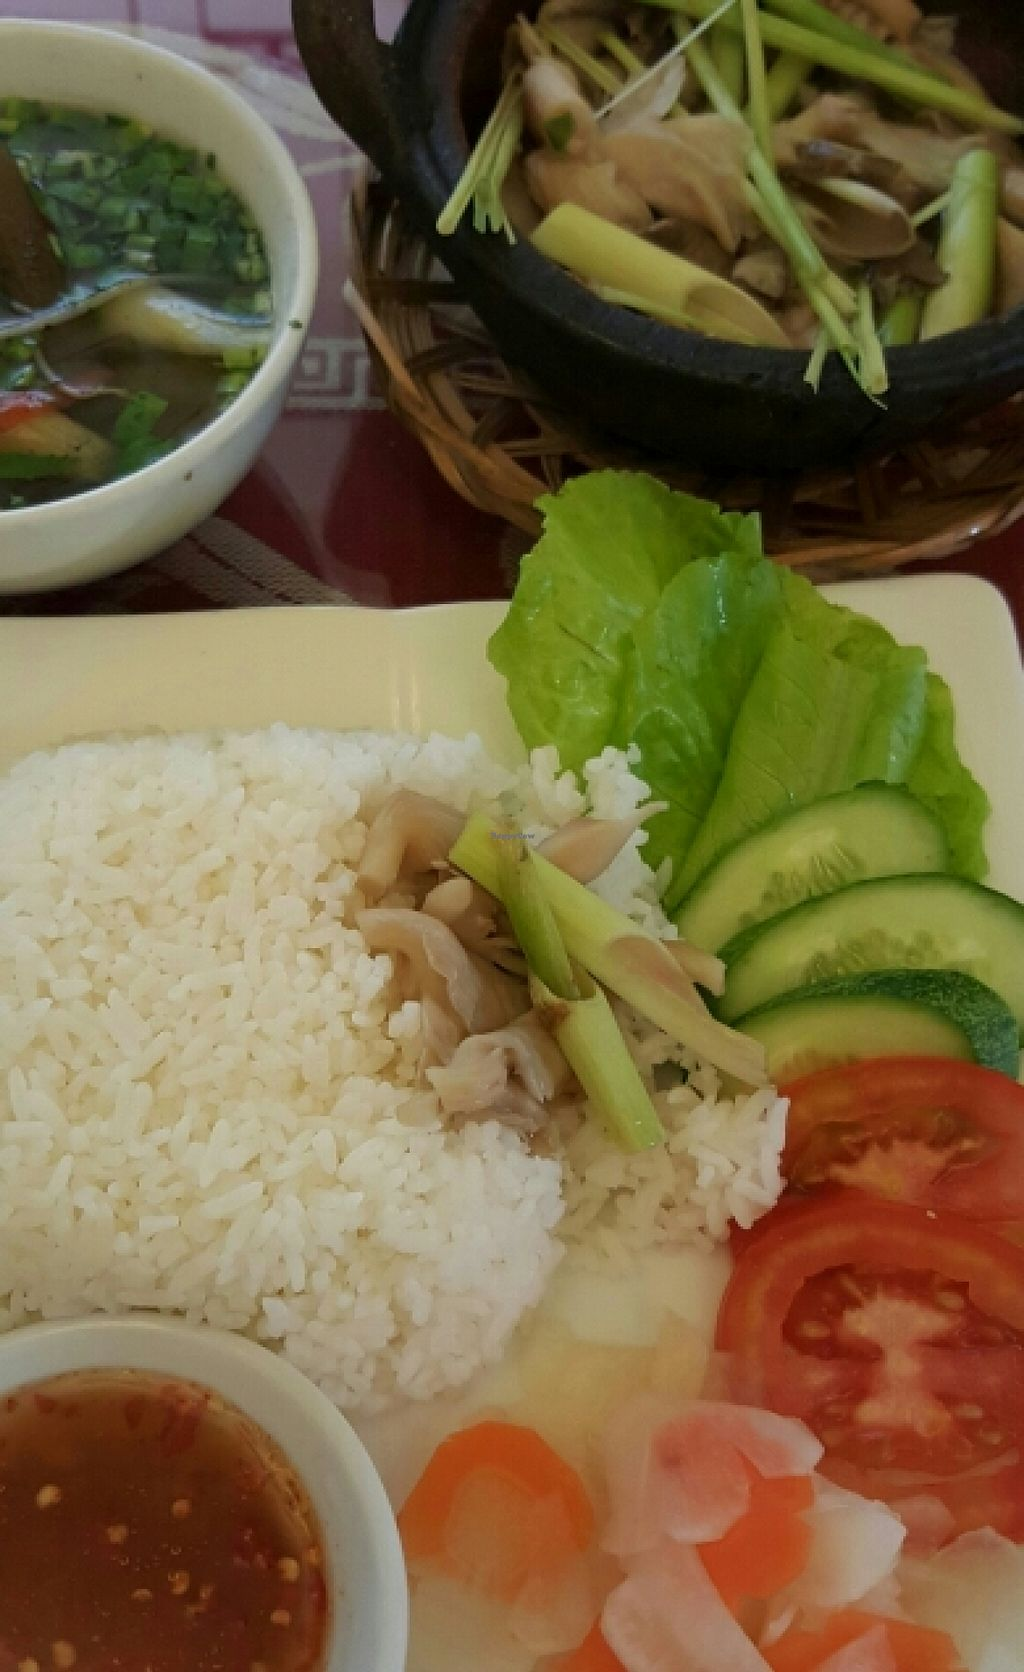 """Photo of CLOSED: Pho Nam Chay  by <a href=""""/members/profile/Refinnej"""">Refinnej</a> <br/>Com Bao Ngu Thap Cam - Oyster mushrooms steamed with lemon grass and other veg <br/> November 4, 2015  - <a href='/contact/abuse/image/65378/123931'>Report</a>"""